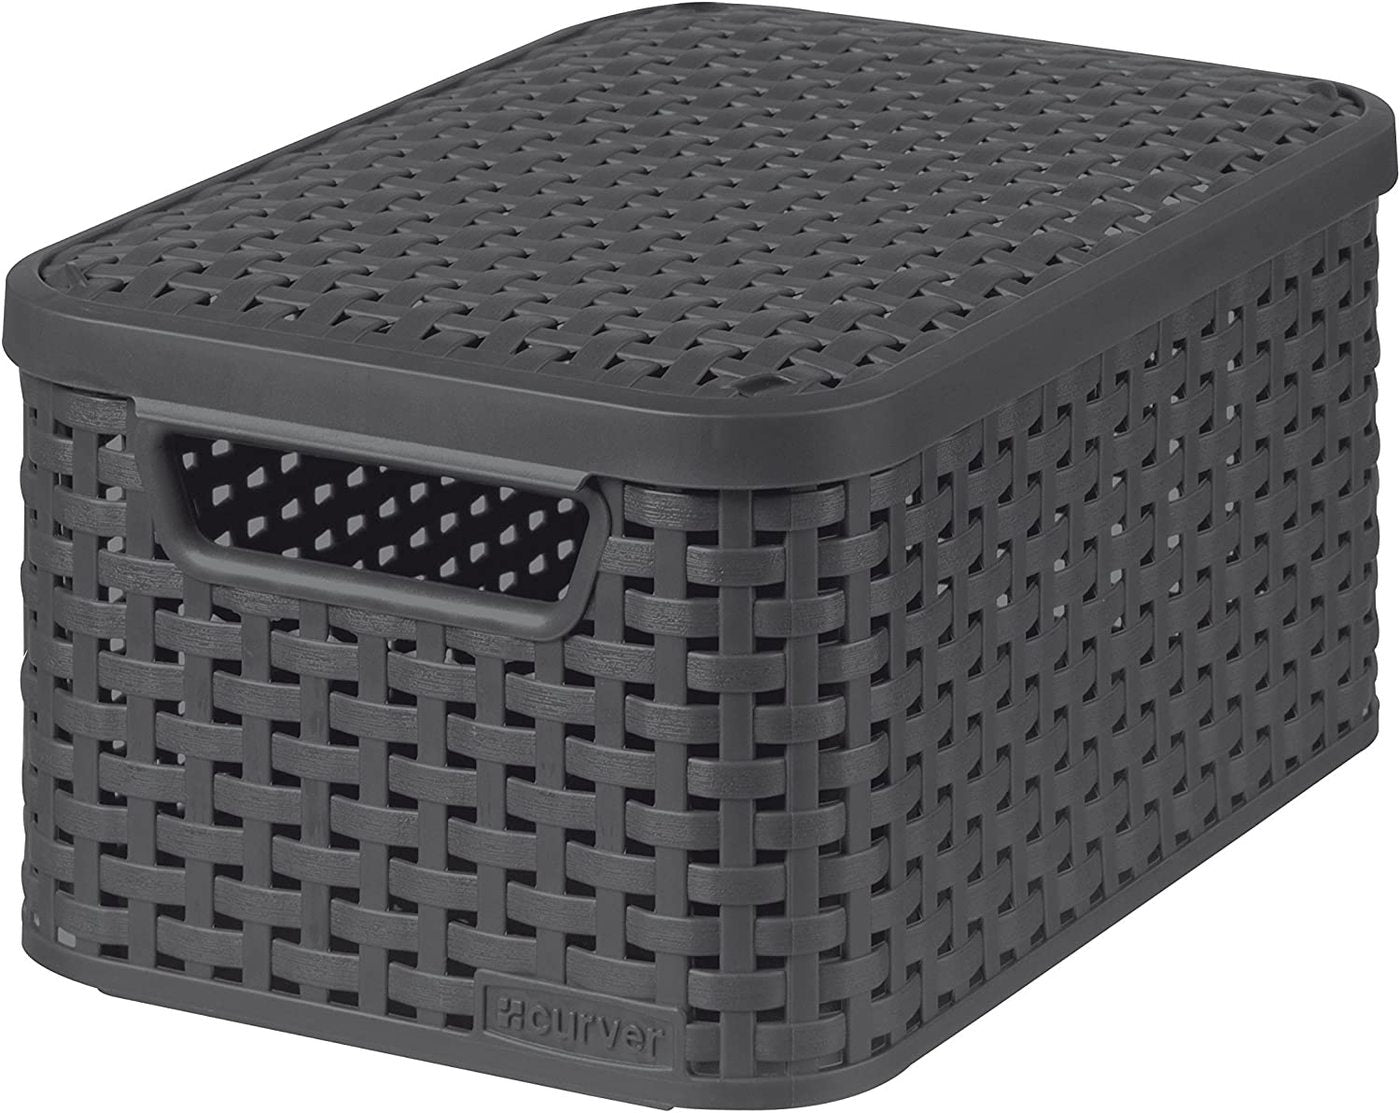 Curver Storage Basket with lids Style Box Large